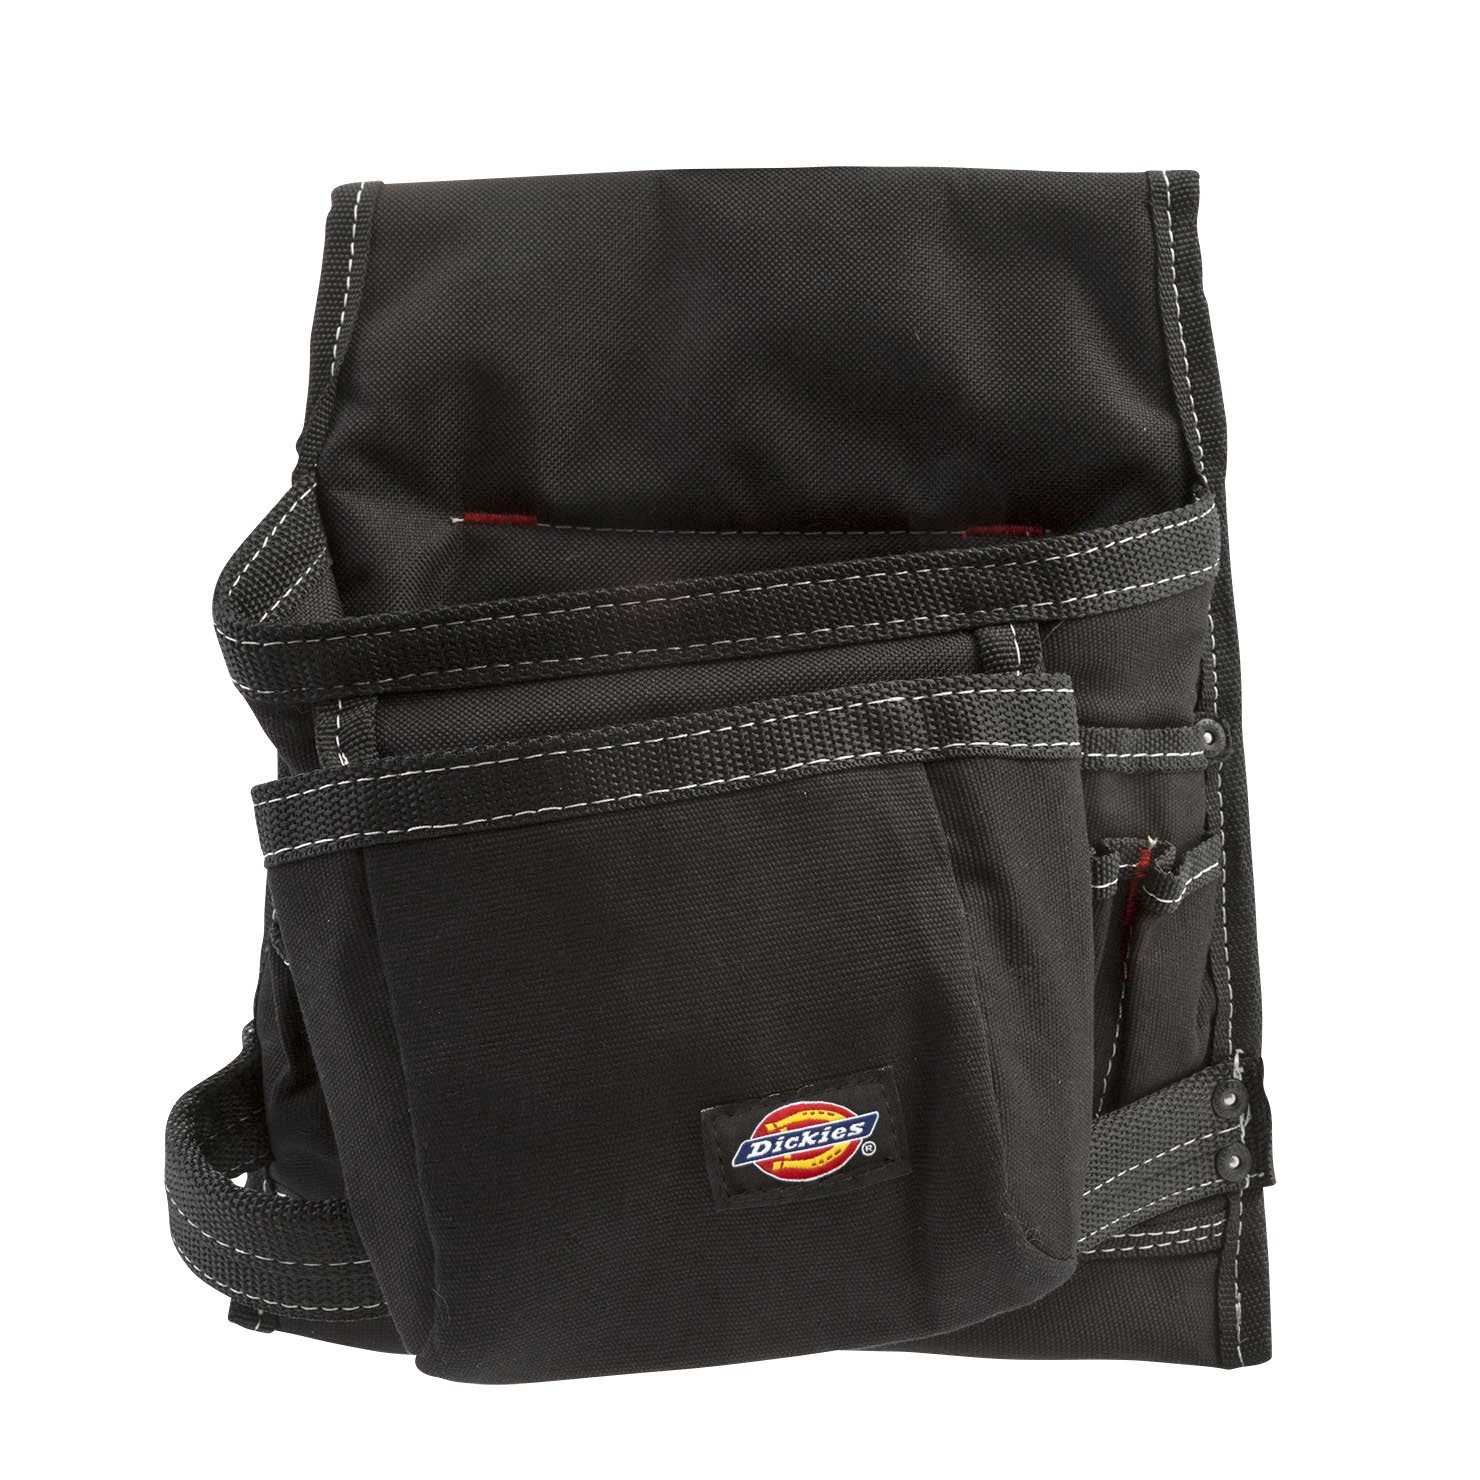 Dickies Work Gear 57075 8-Pocket Tool and Utility Pouch